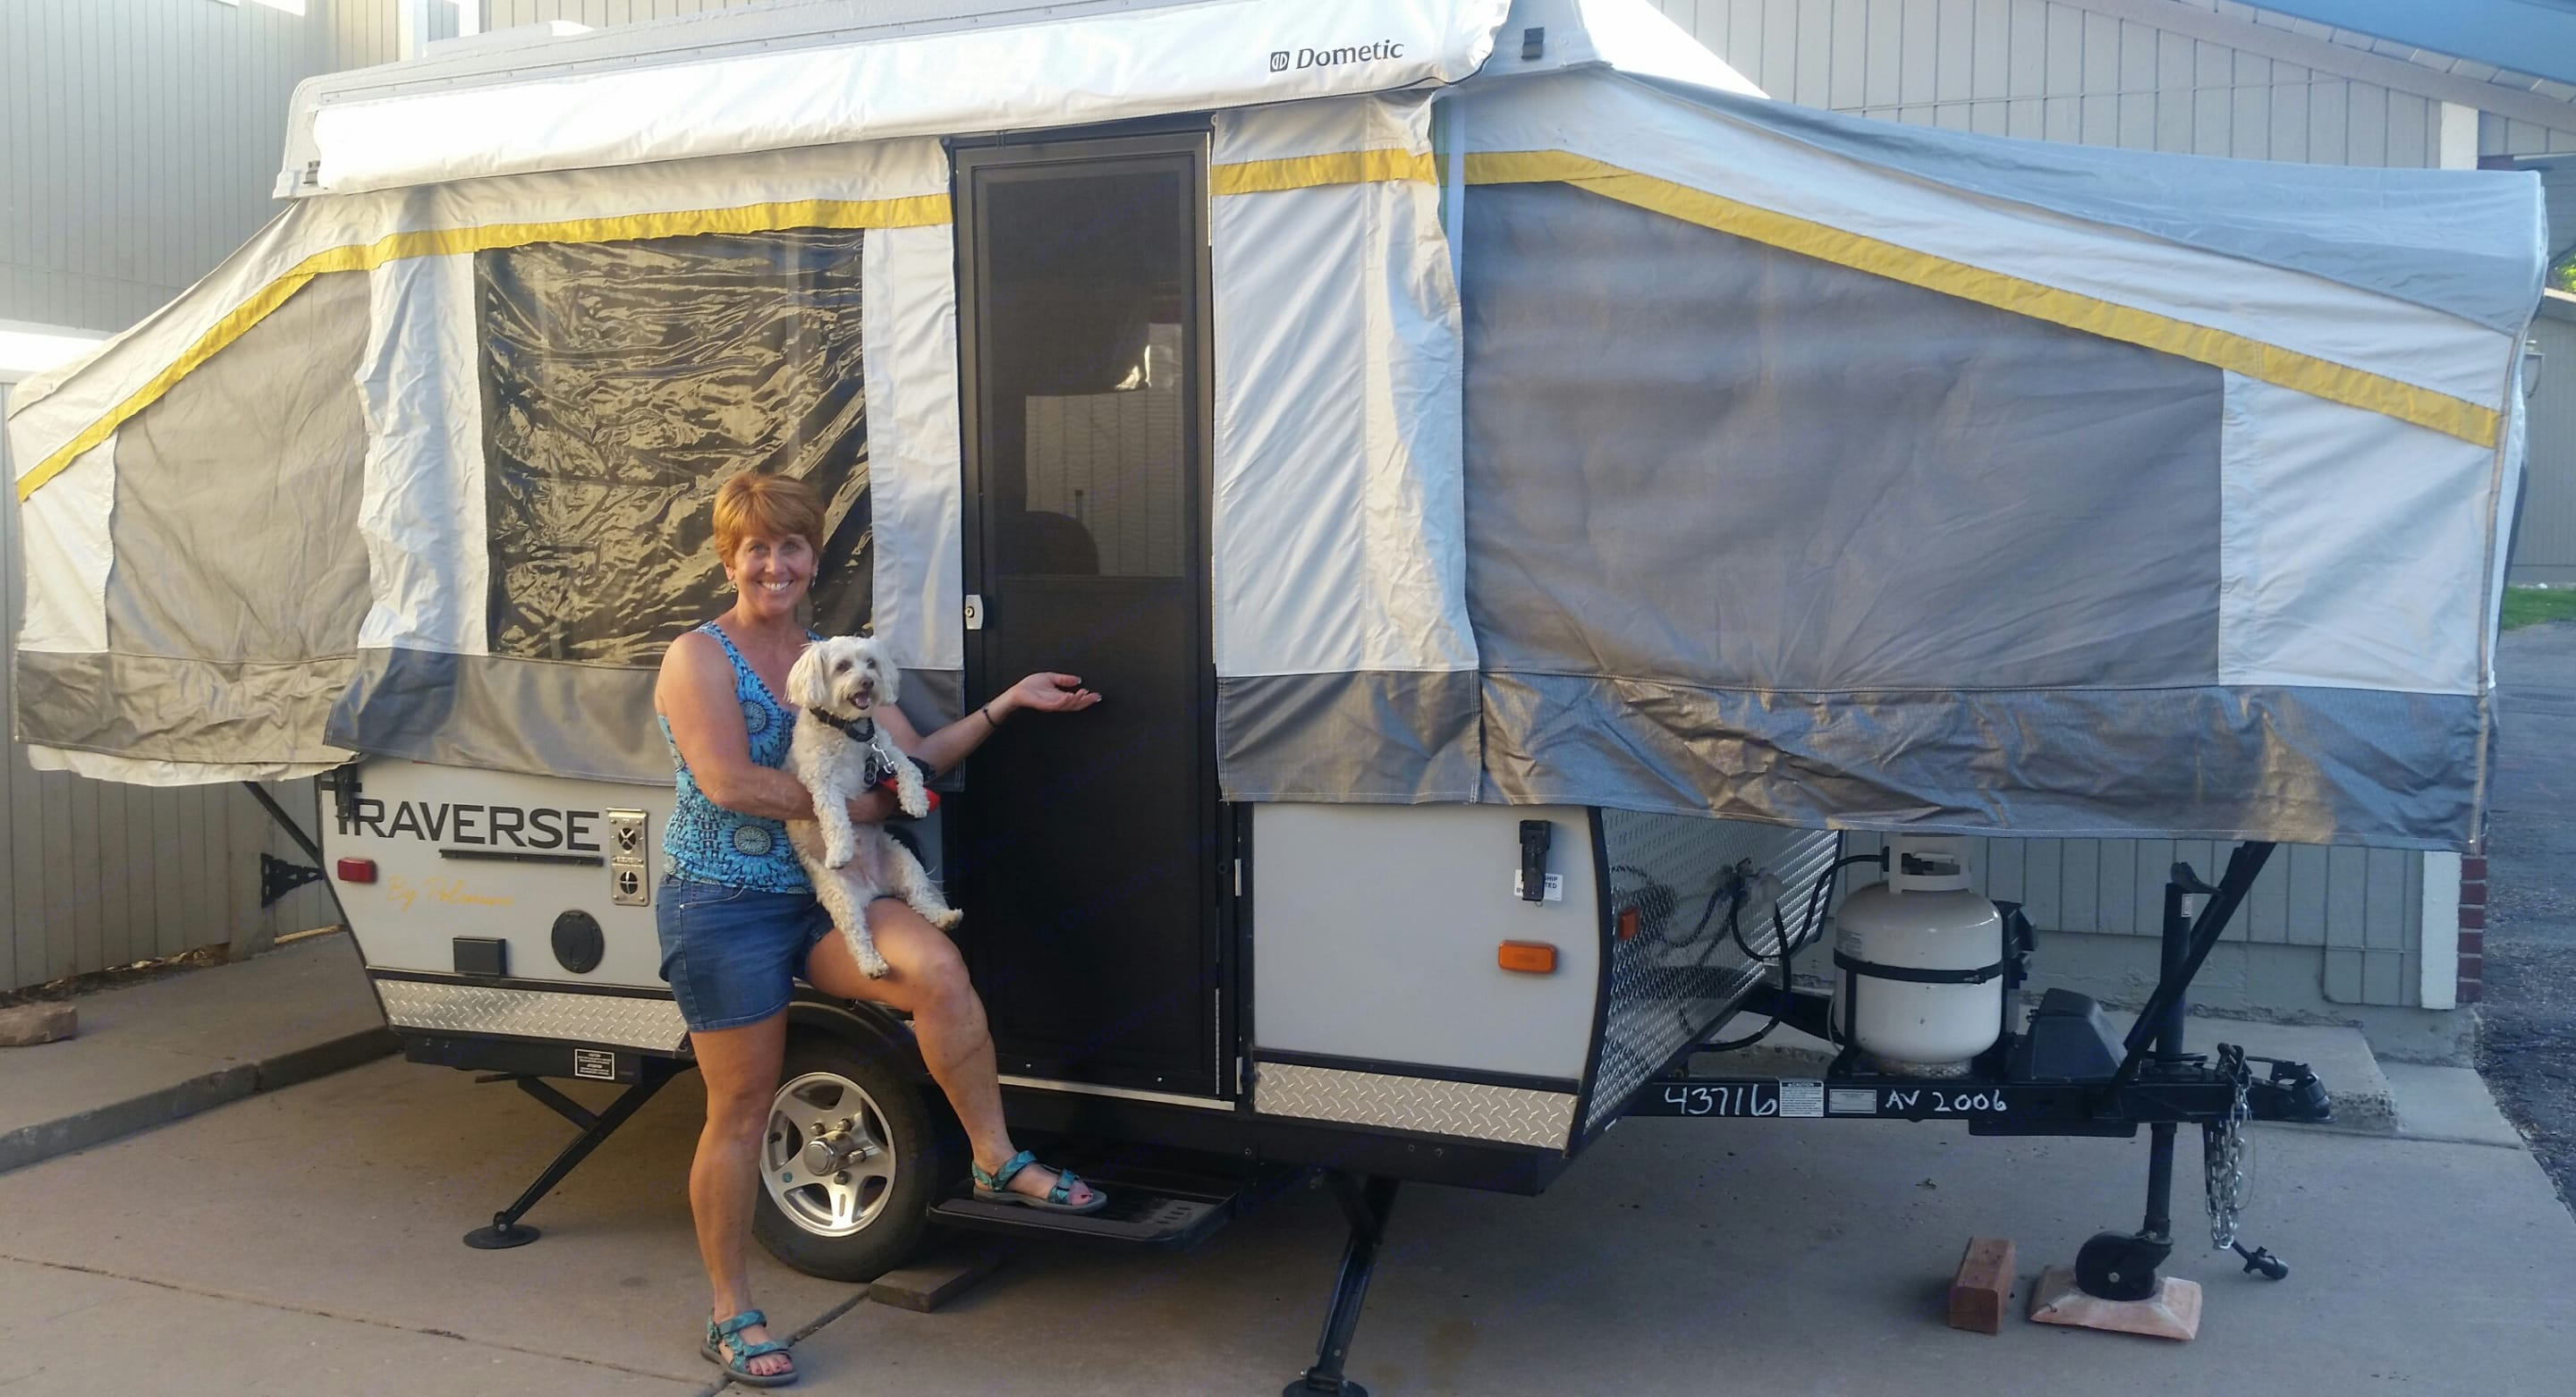 * Easy to place up and small enough to travel with for even me! * Electric Pop up for sides. * Very sleek and stylist camper. * Rino Roof that can endure hail. . Palomino Traverse 2012